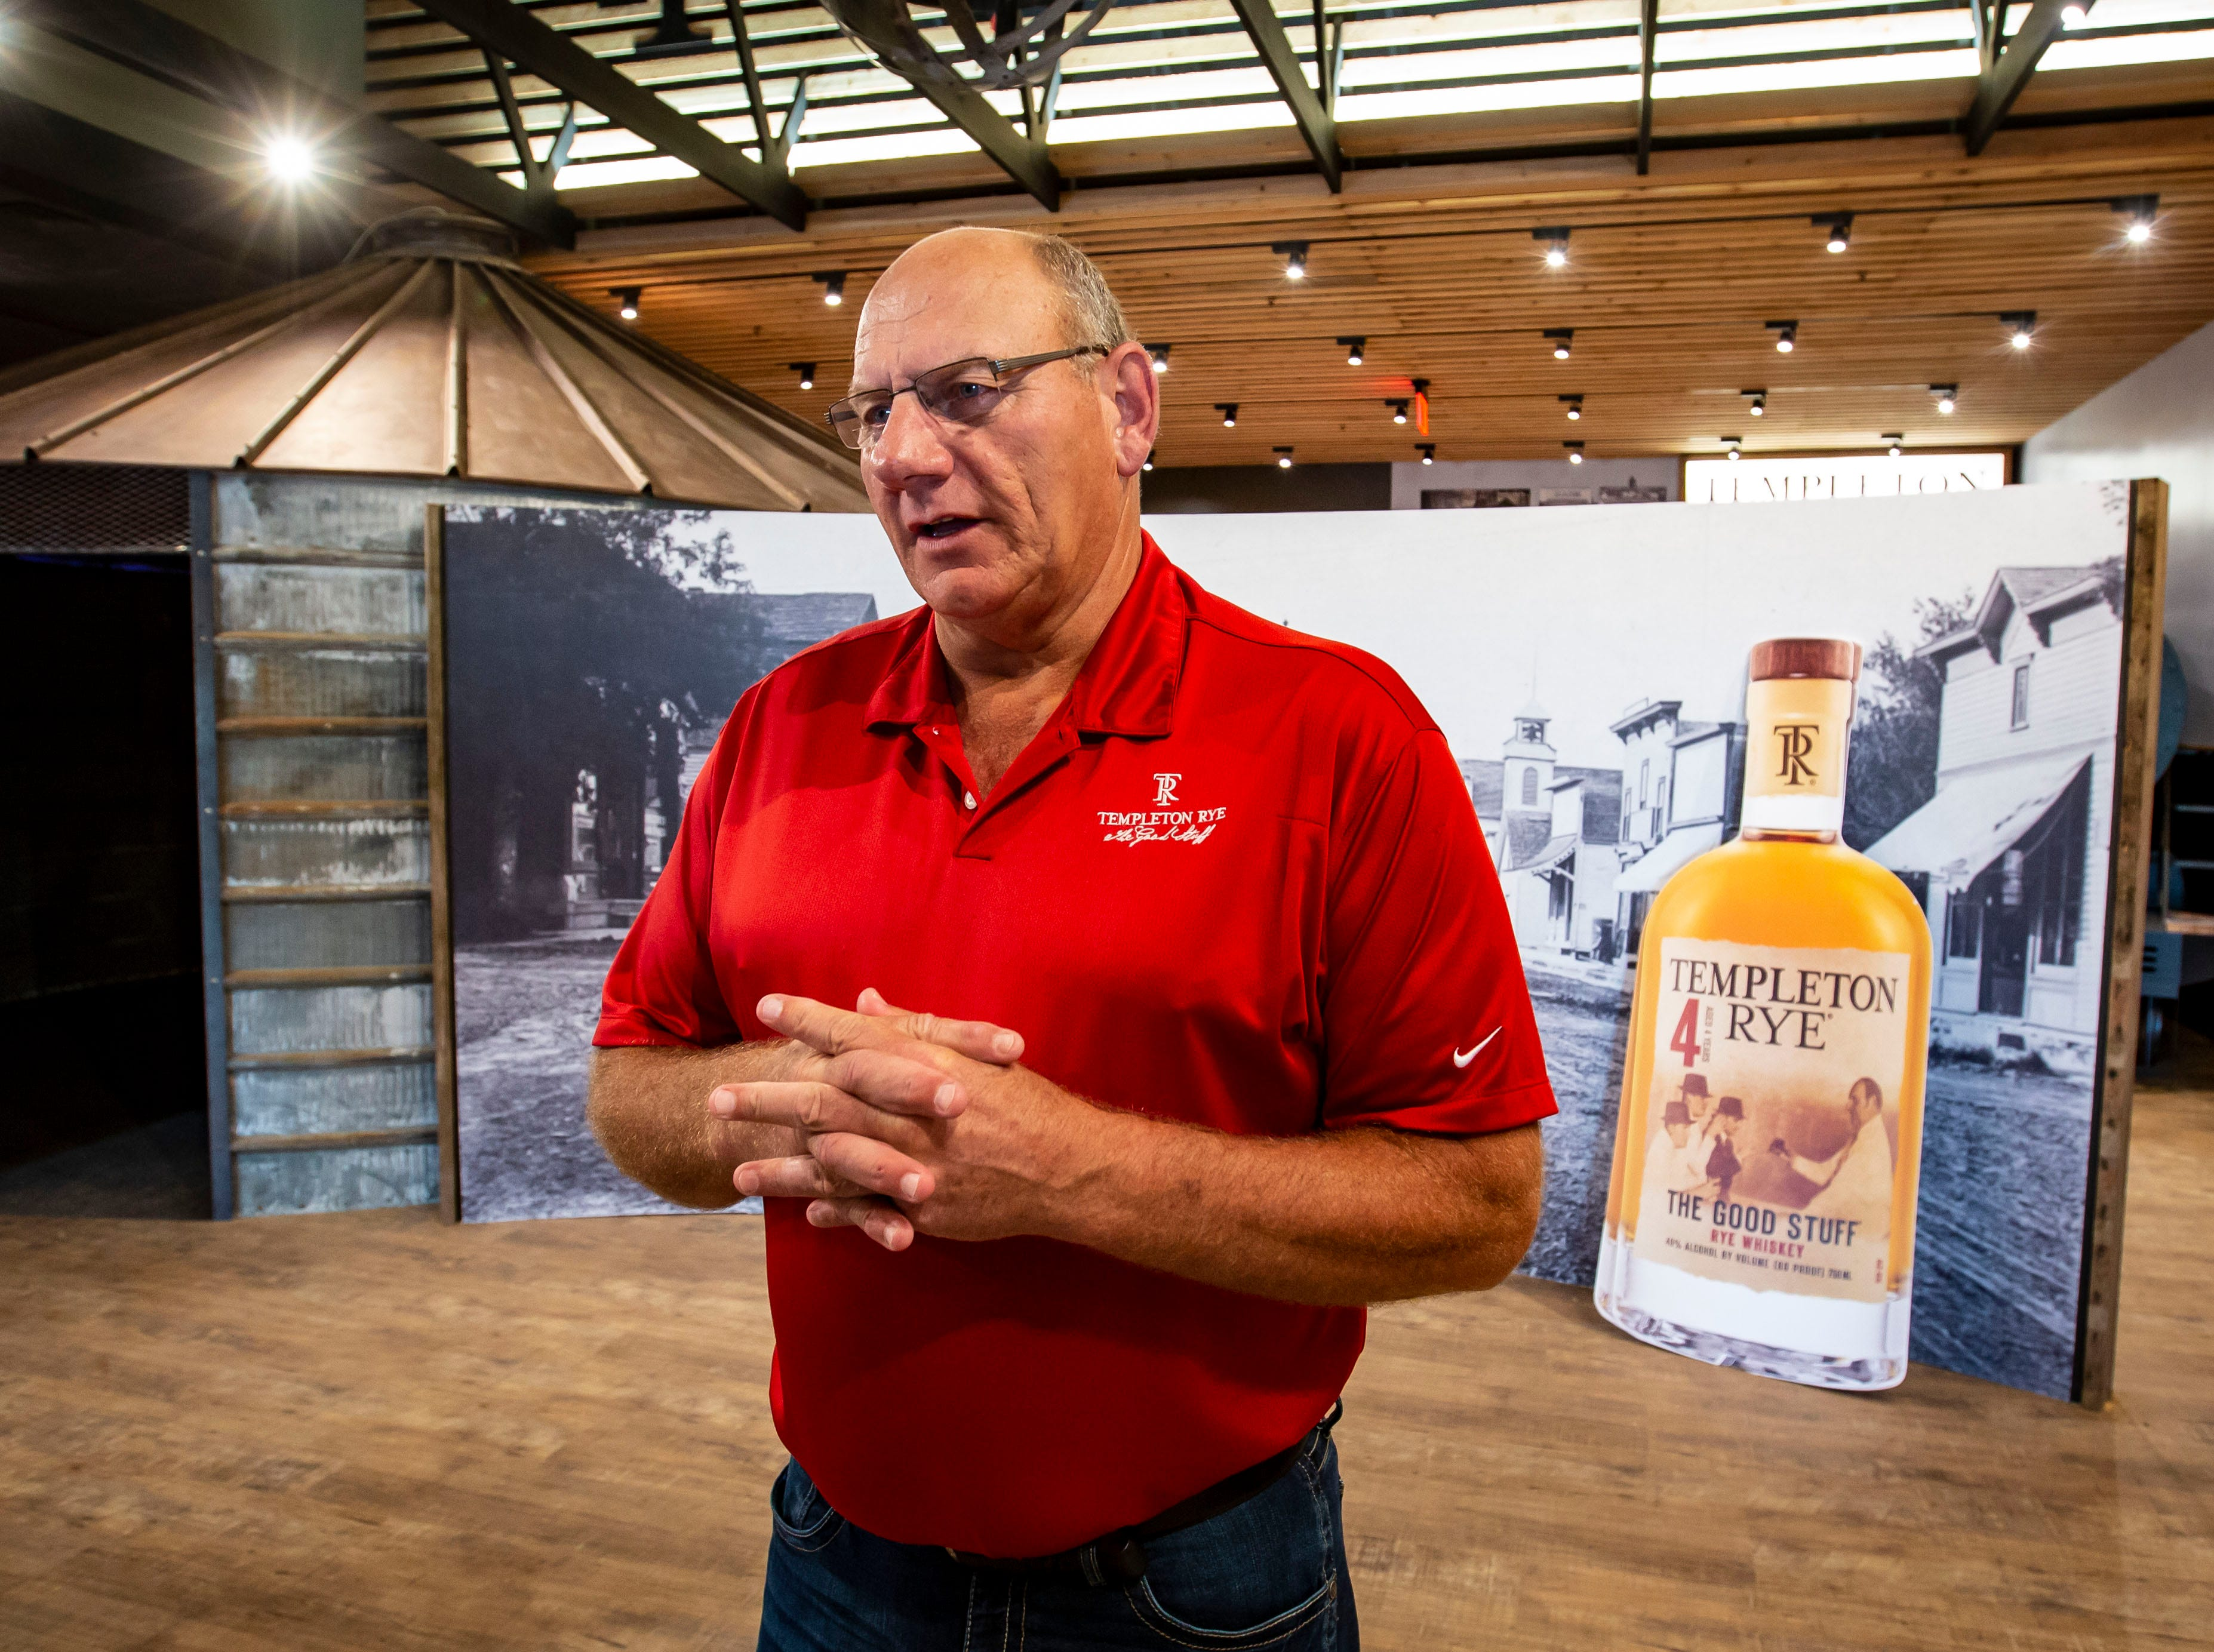 Co-founder Keith Kerkhoff at the Templeton Rye museum in their new $35 million distillery in Templeton, Iowa, shown here Monday, Aug. 6, 2018.